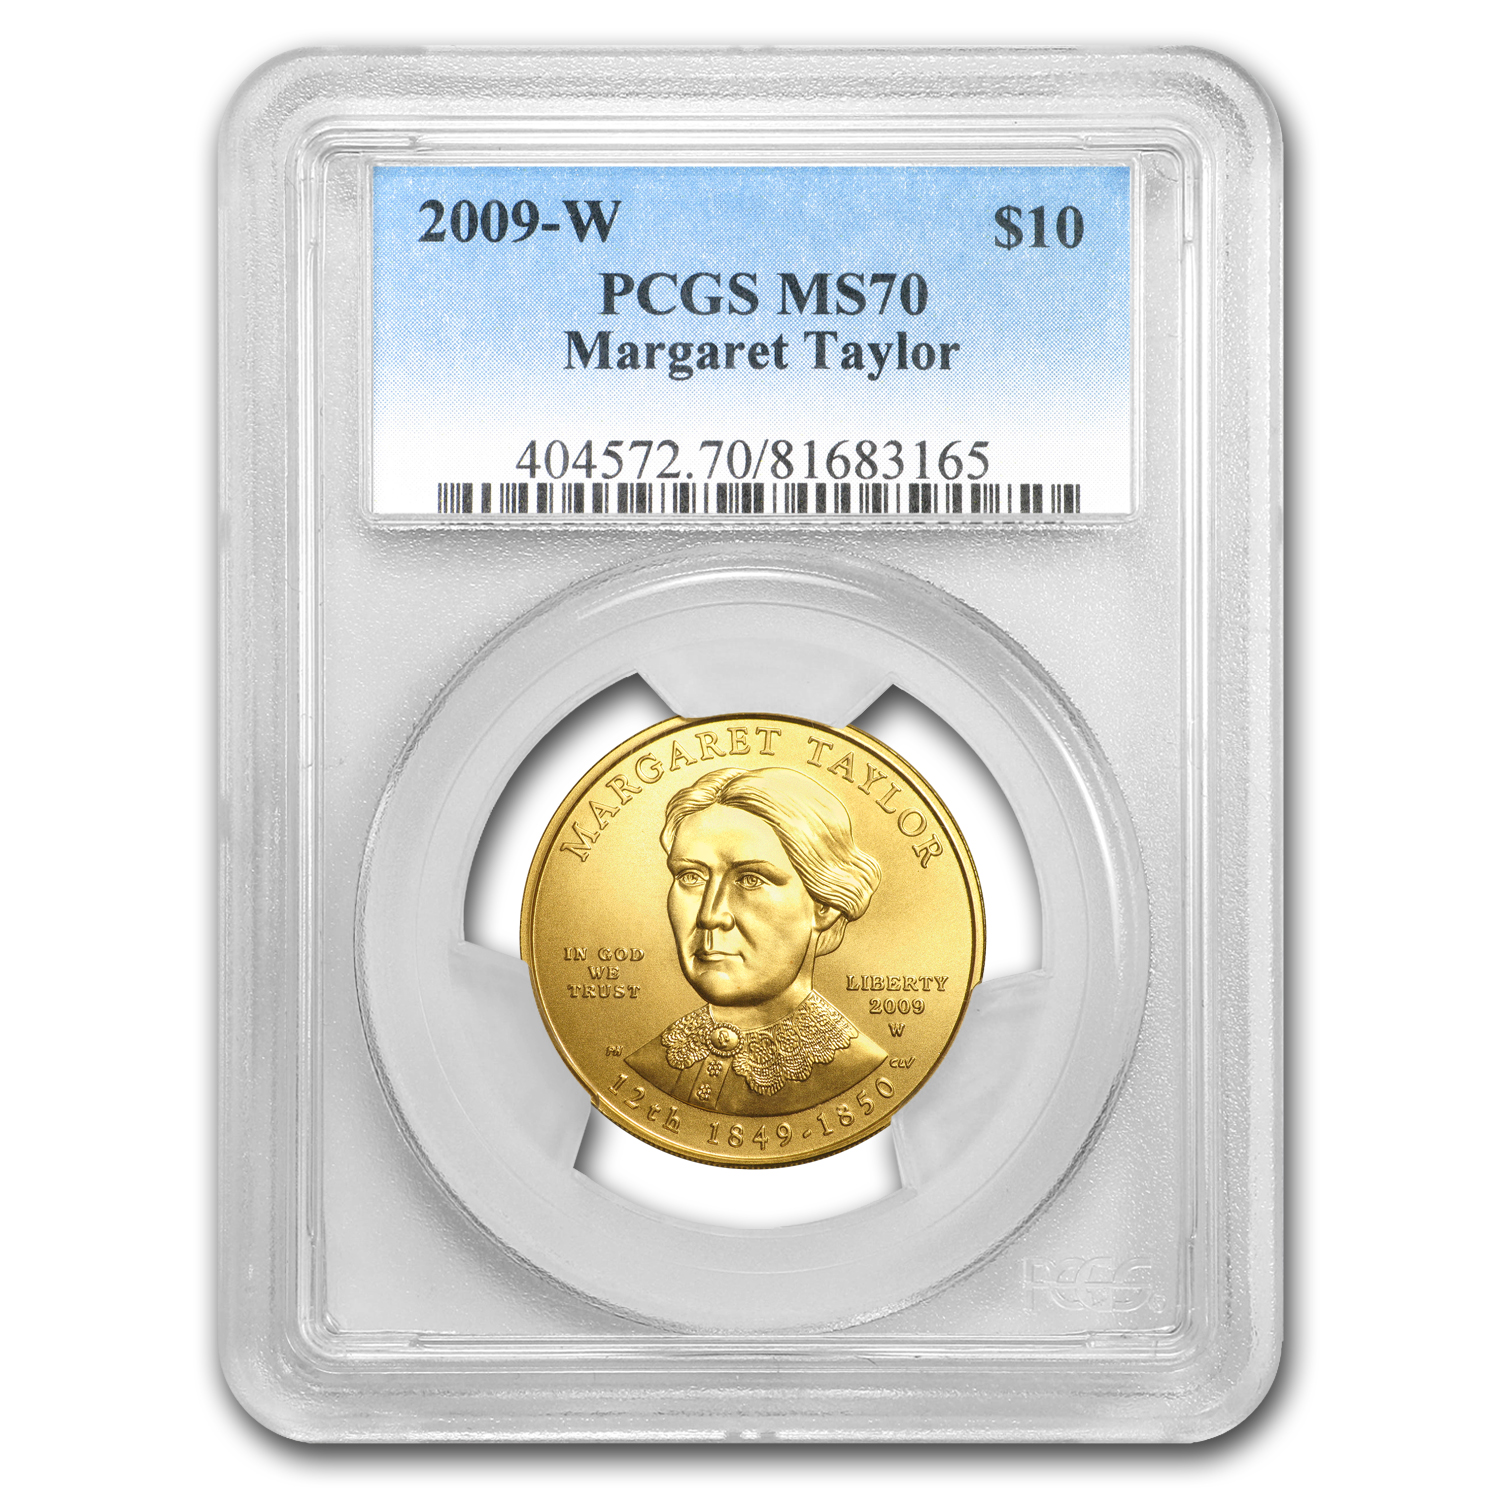 2009-W 1/2 oz Gold Margaret Taylor MS-70 PCGS